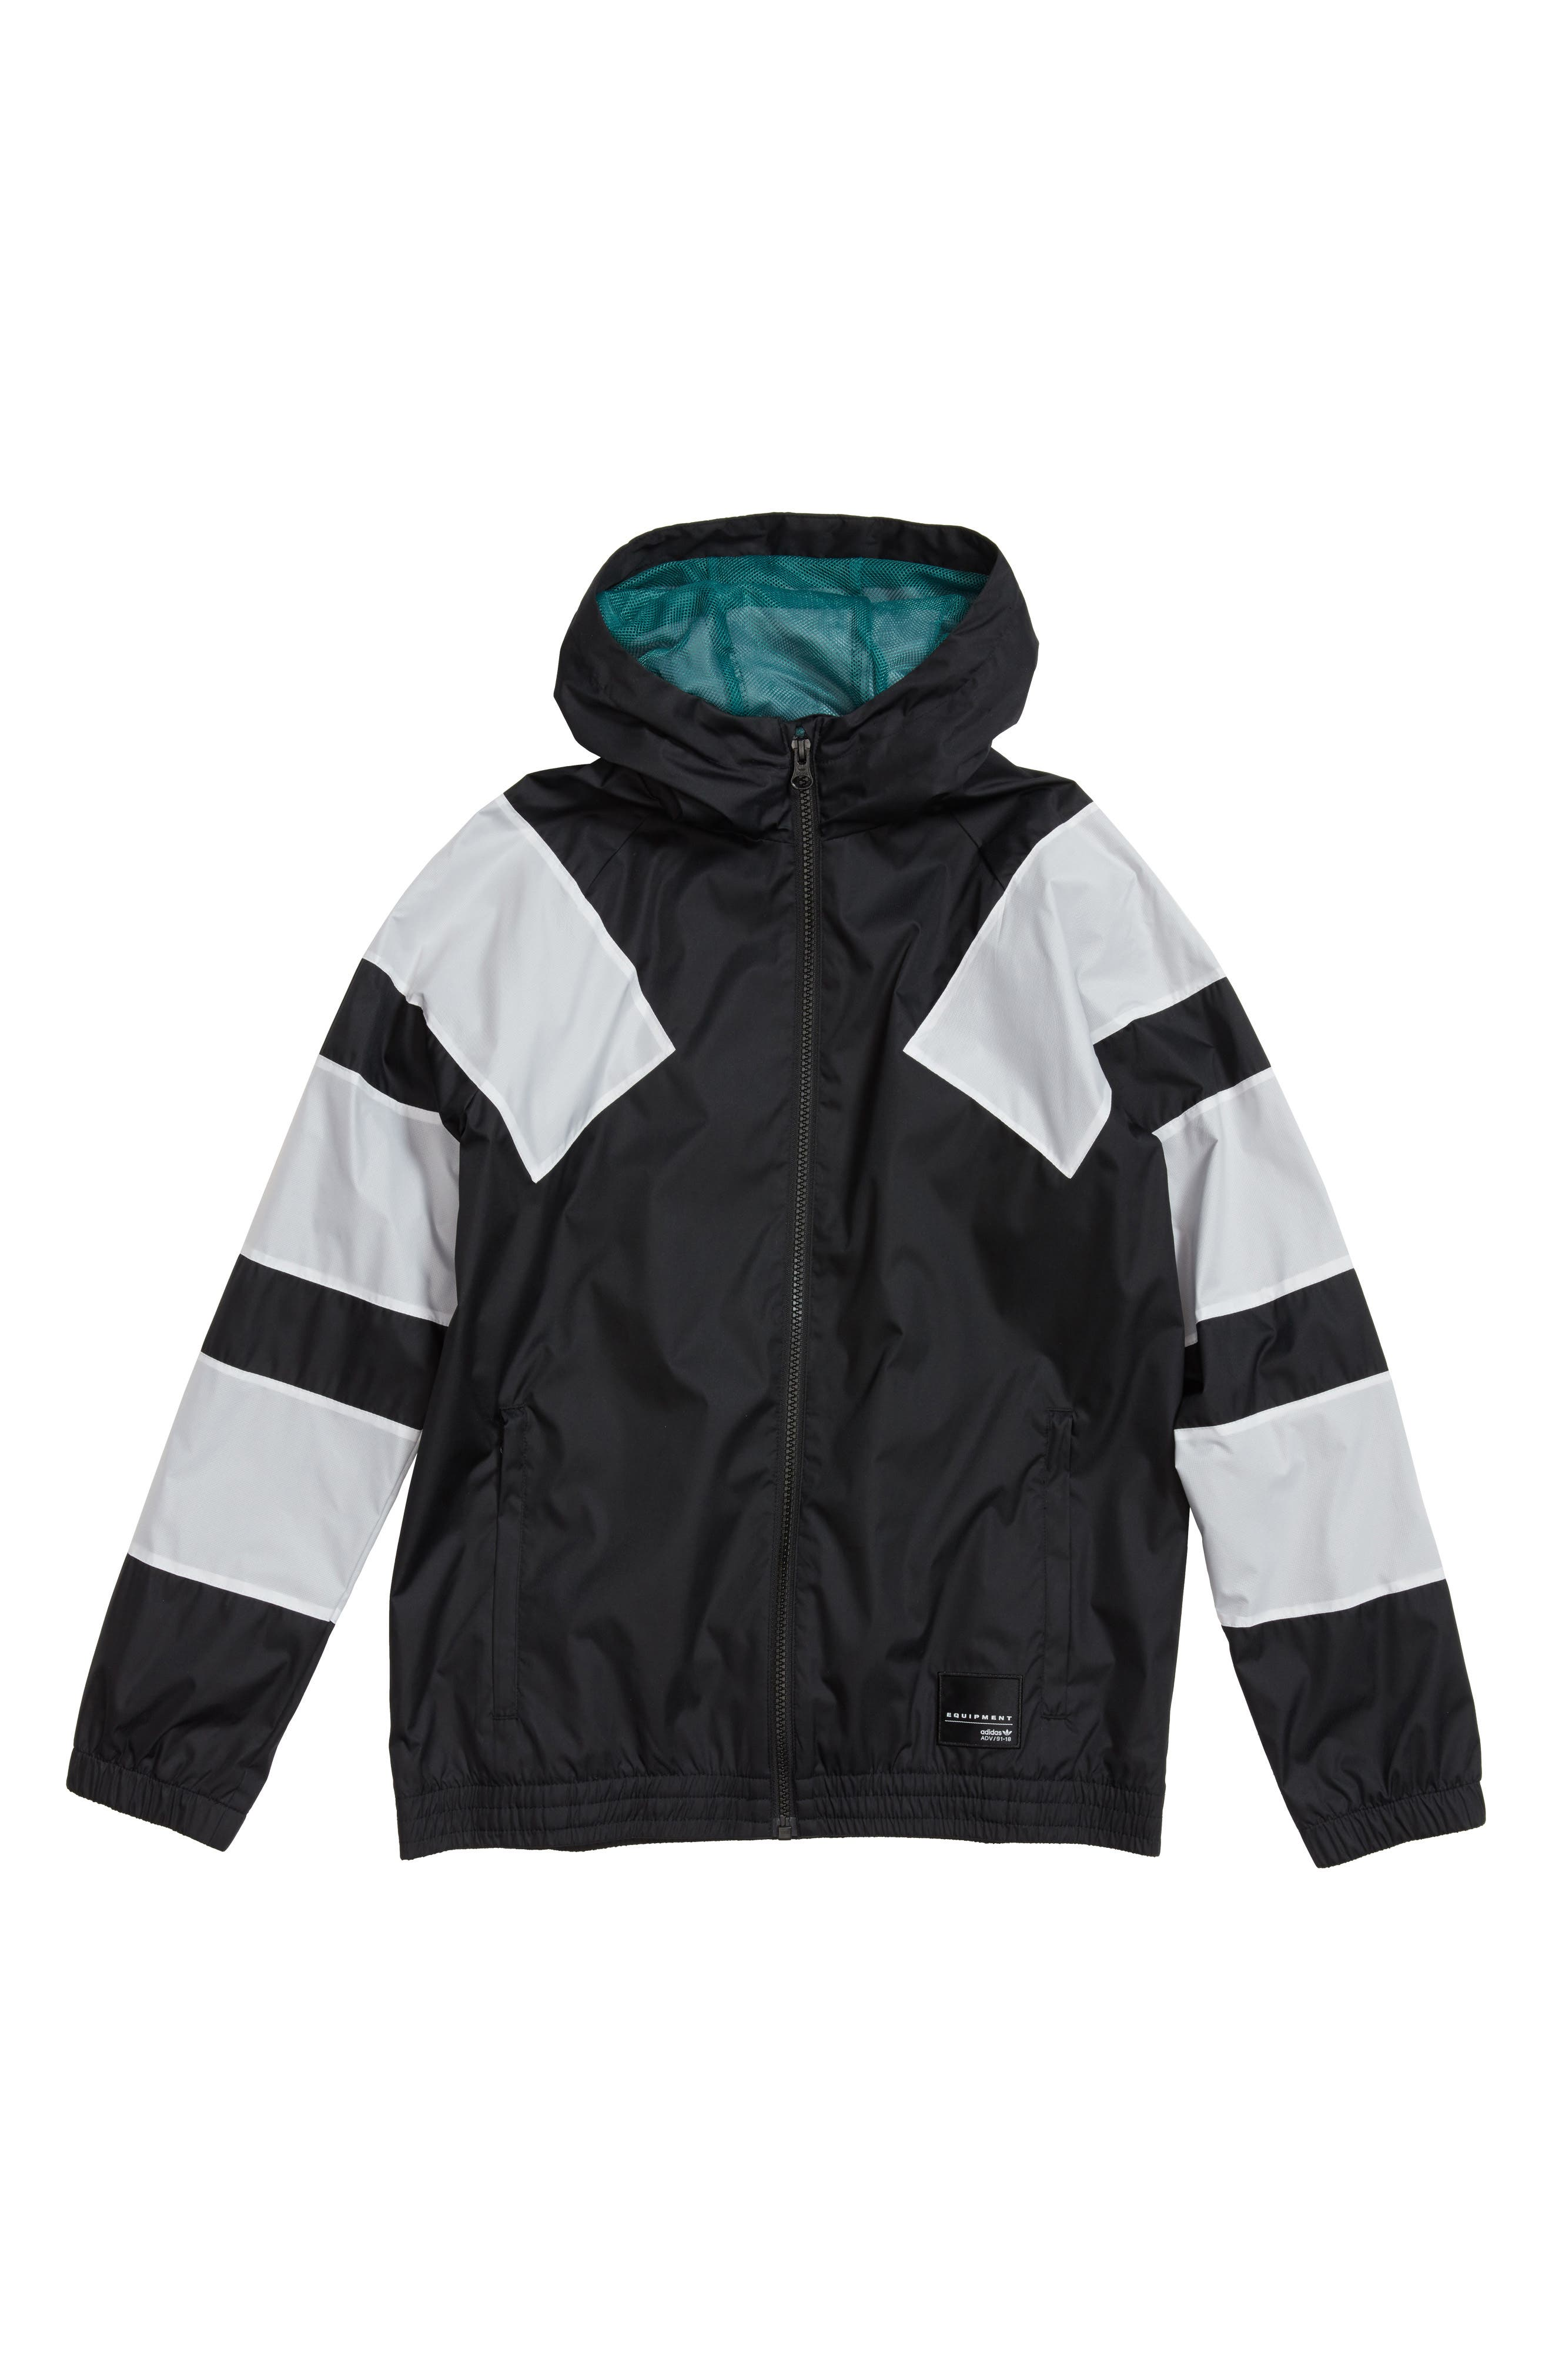 Main Image - adidas Originals EQT Hooded Windbreaker Jacket (Little Boys & Big Boys)